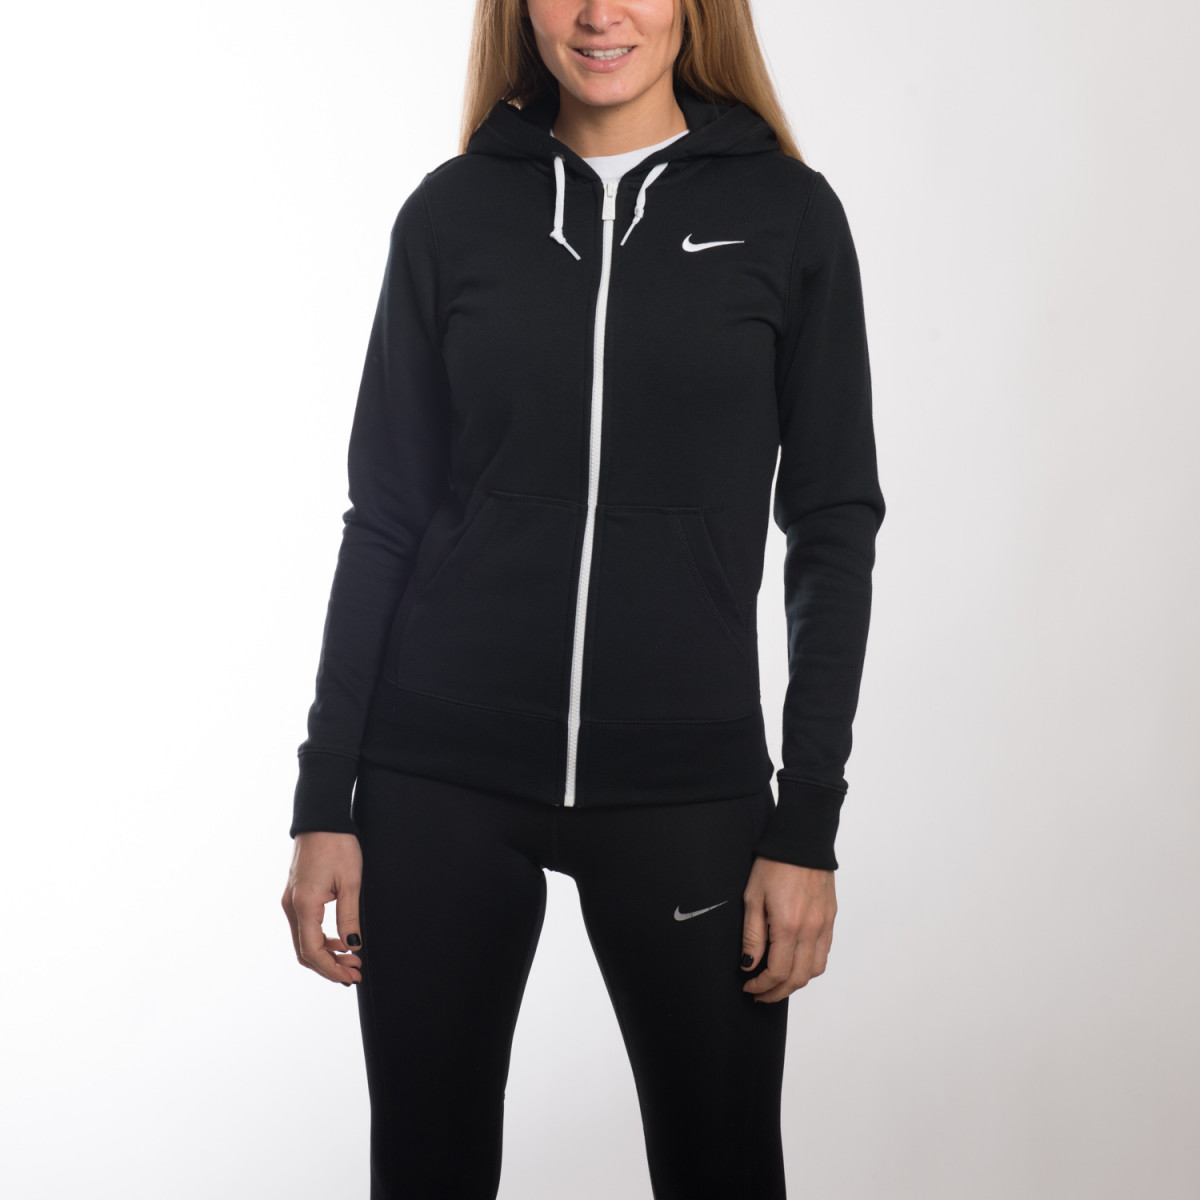 CAMPERA NIKE CLUB FT FZ HOODY SWOOSH